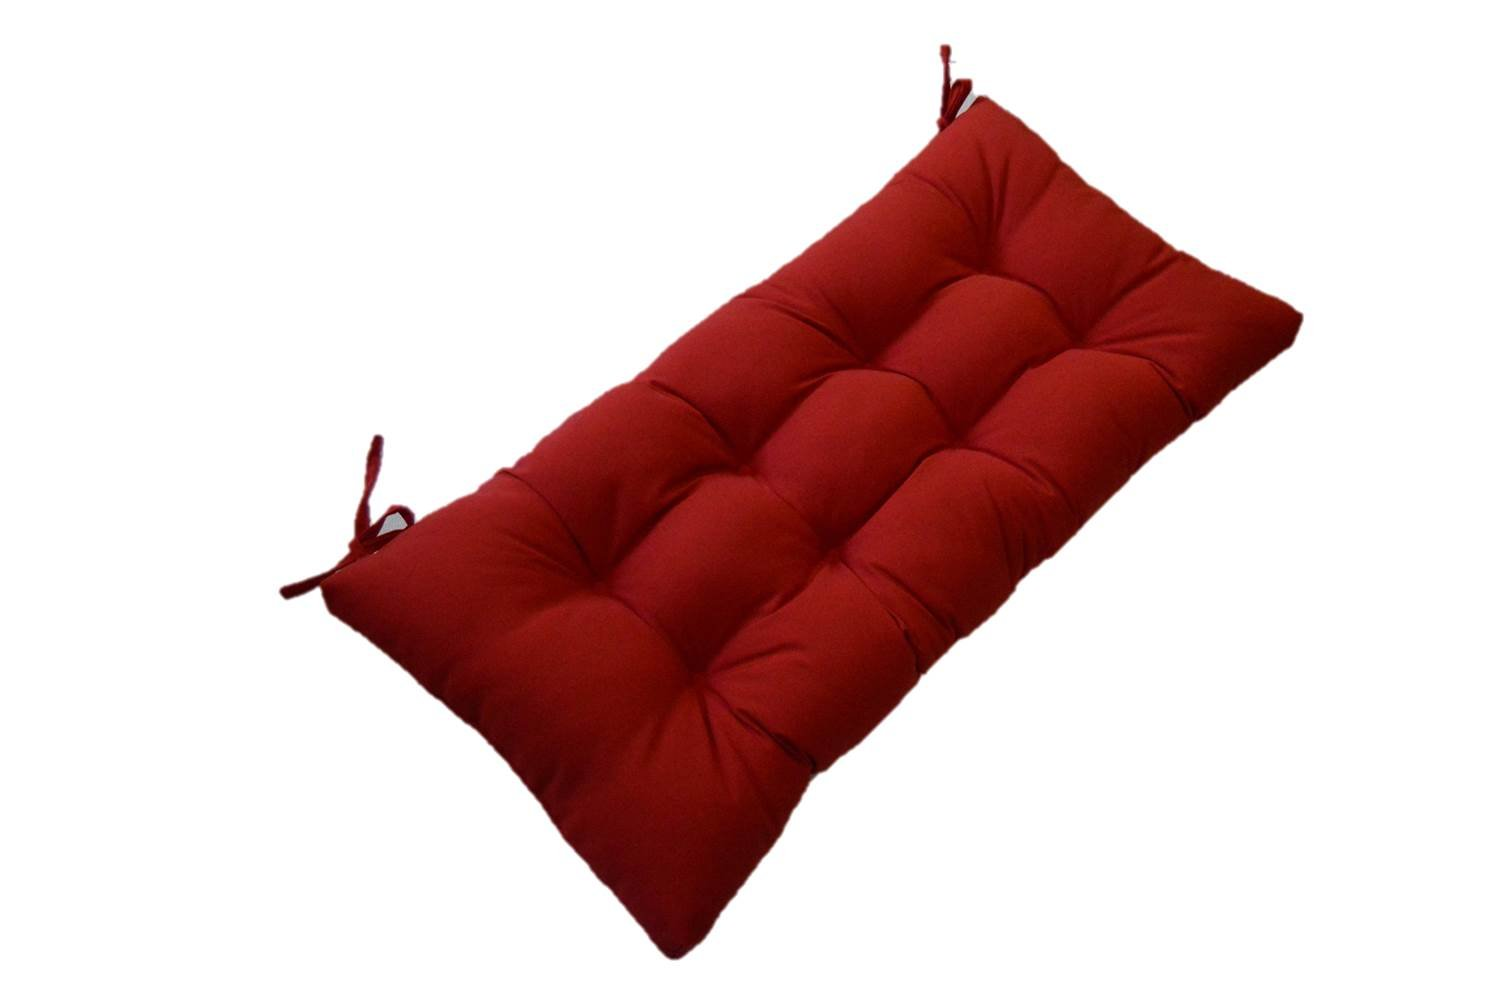 """Resort Spa Home Decor Solid Red Tufted Cushion for Bench, Swing, Glider Indoor/Outdoor - Choose/Select Size (58"""" x 17"""")"""